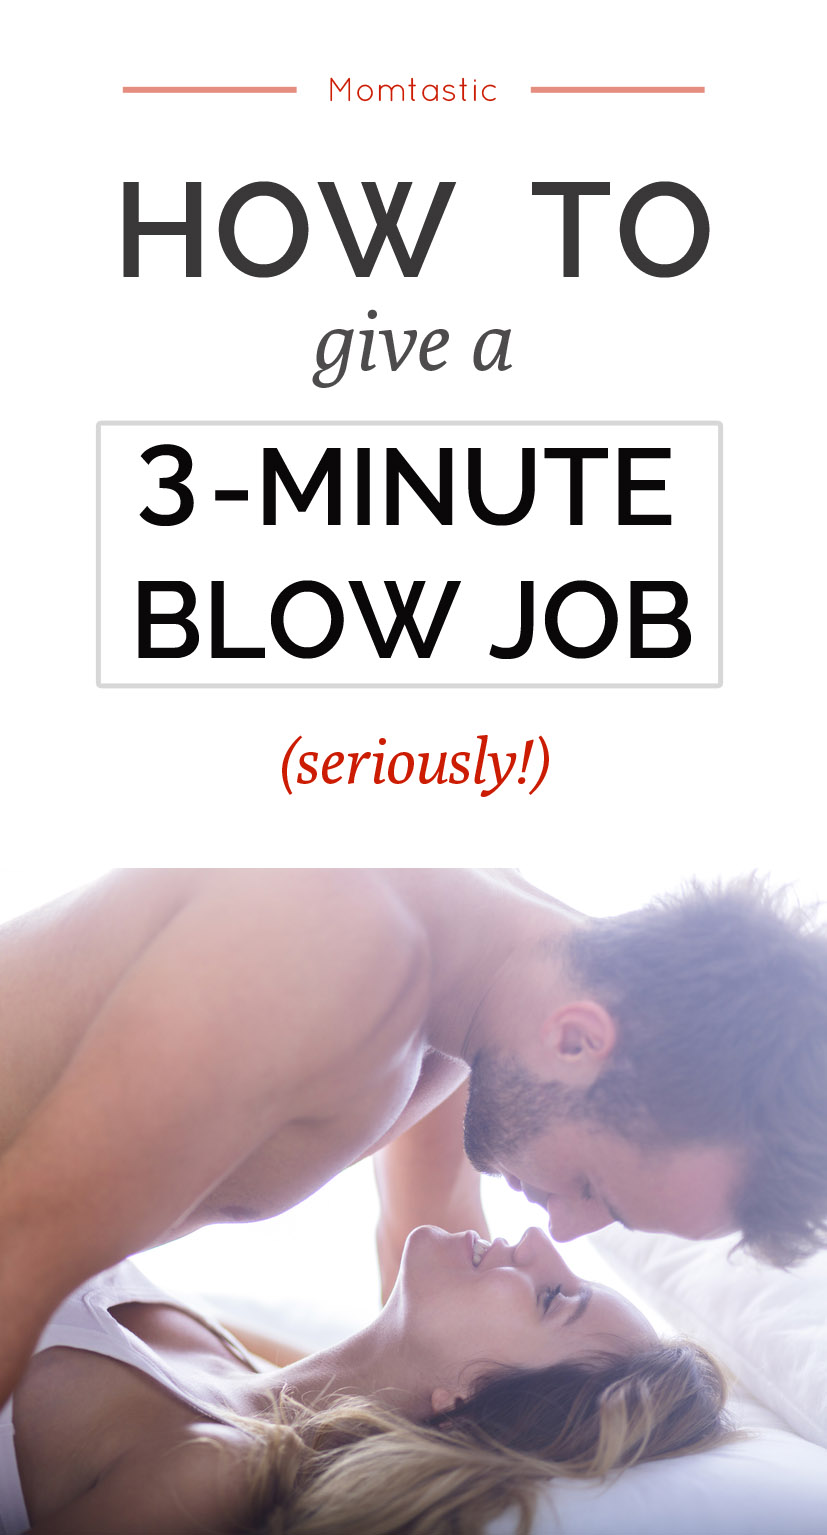 Blow how a to job mindblowing give